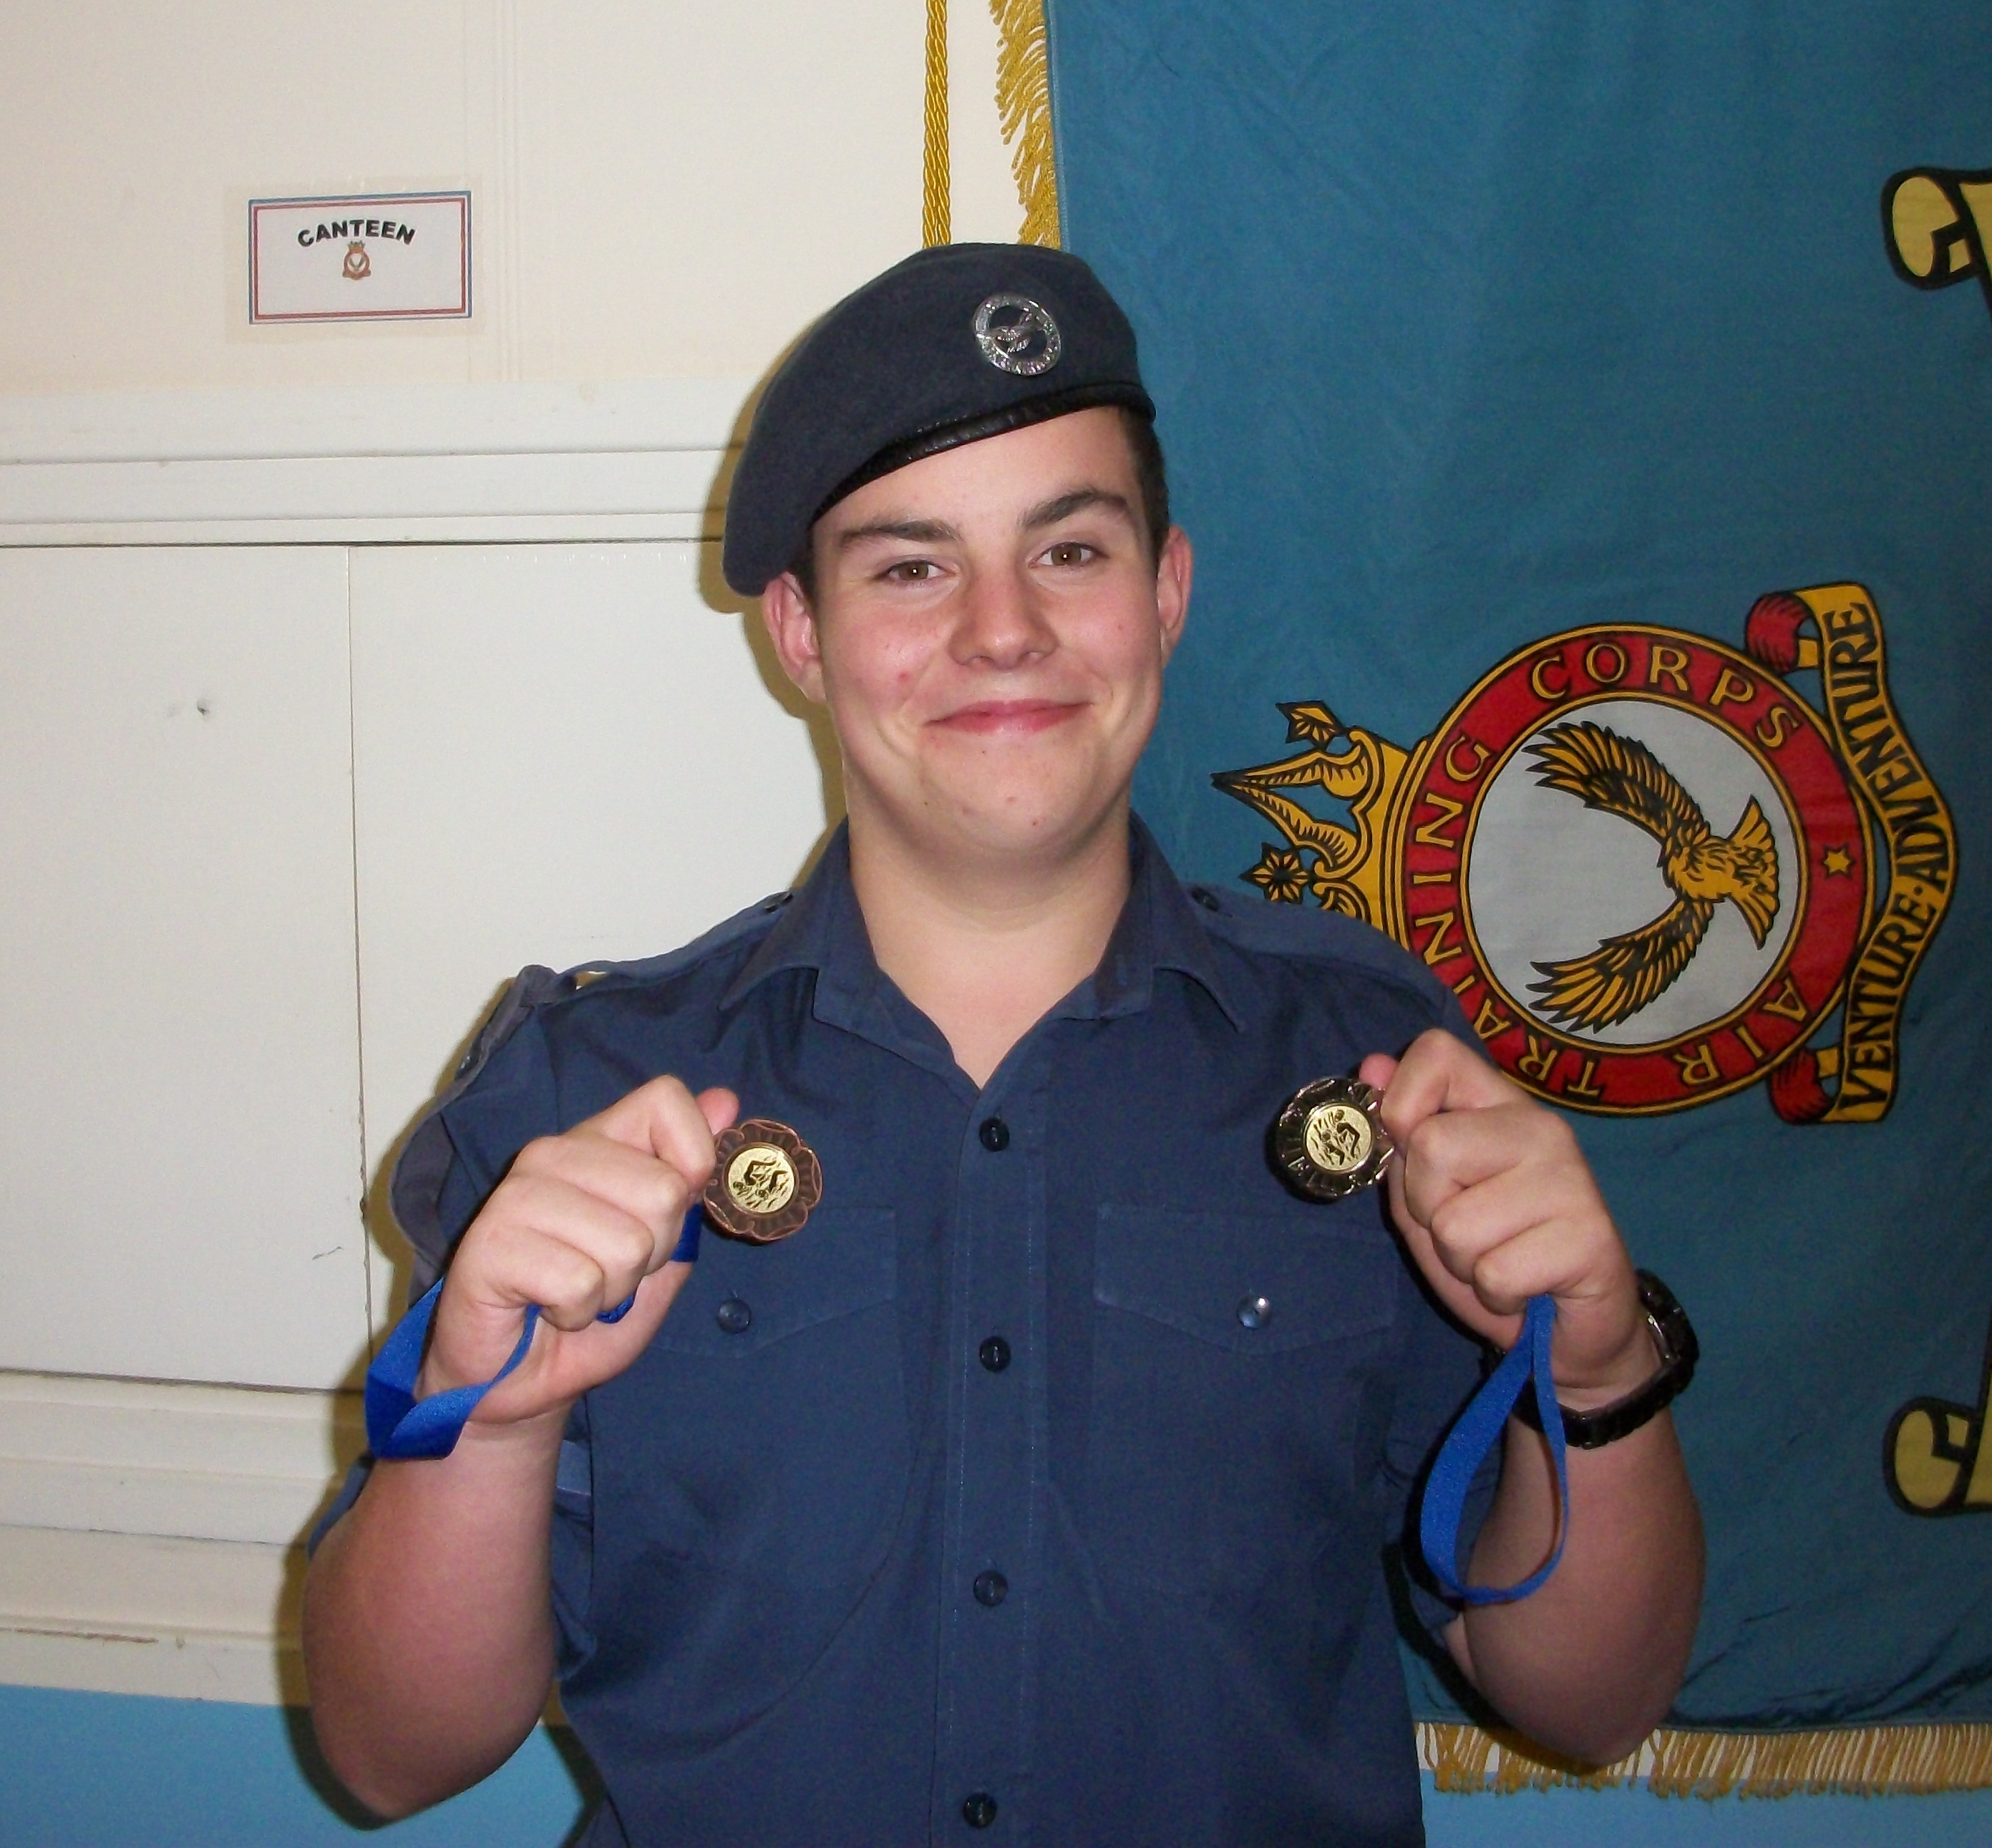 Cadet Newman with his medals